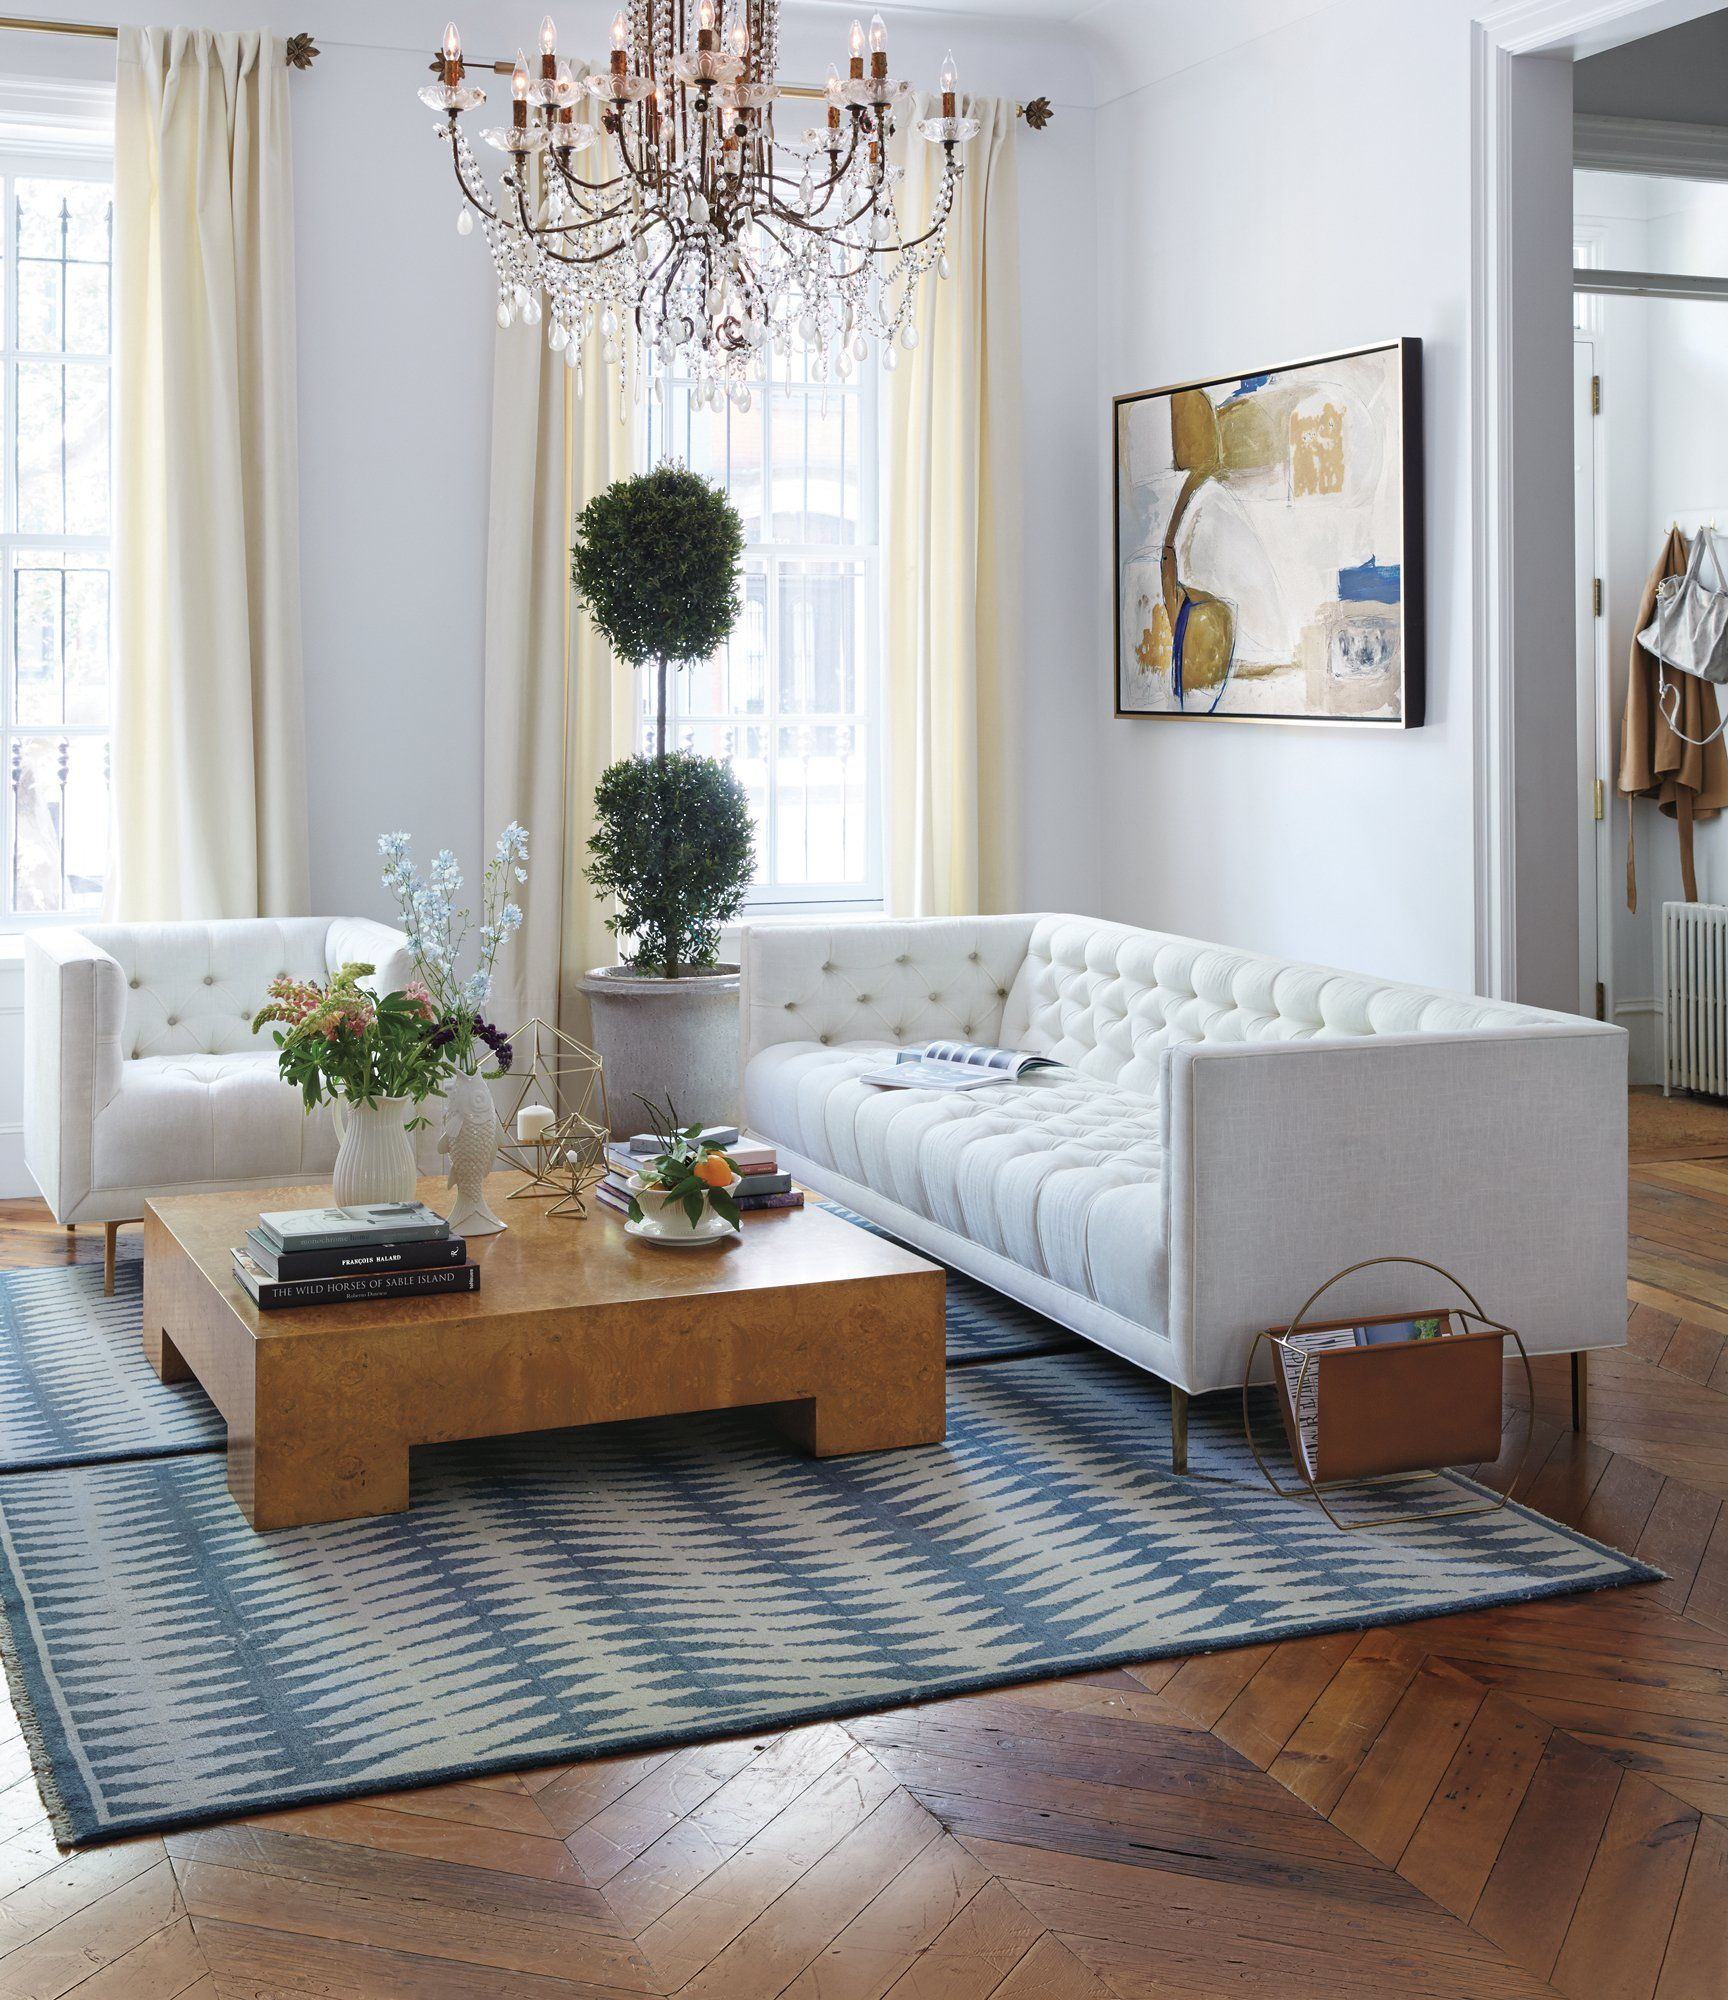 Anthropologie Dining Room: Exclusive: Kate Middleton's Go-To Rug-Maker Designs For